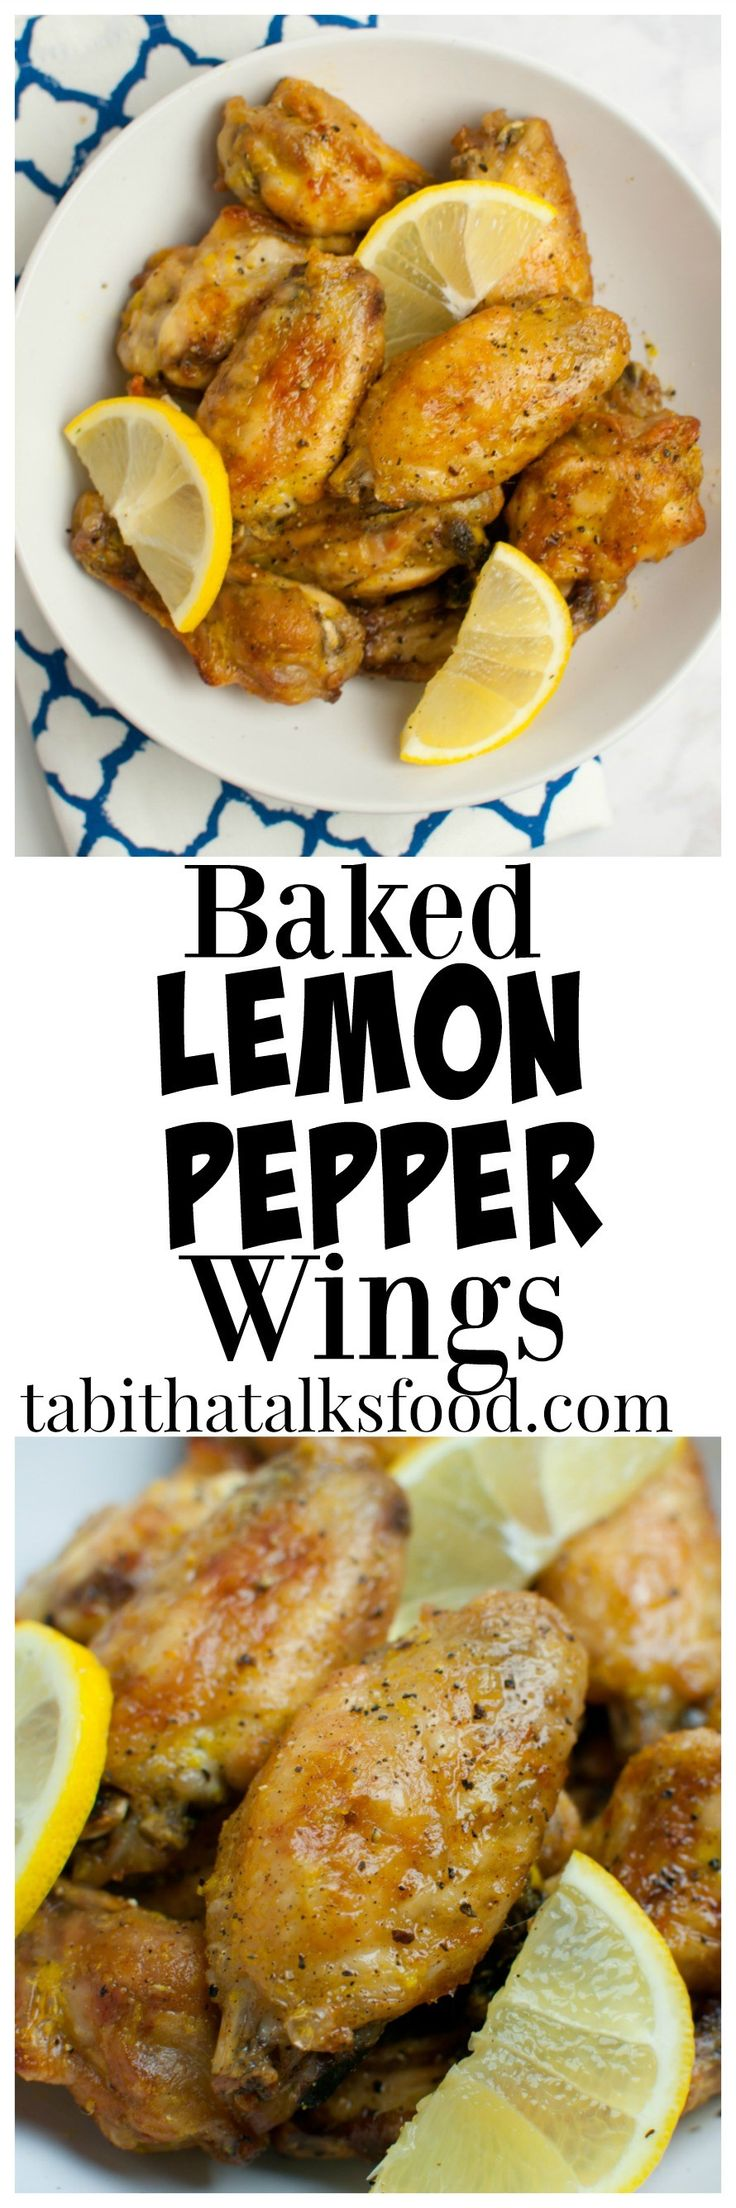 These crispy baked lemon pepper chicken wings are a healthy alternative to the fried wings and they're so easy you'll enjoy them time and time again!